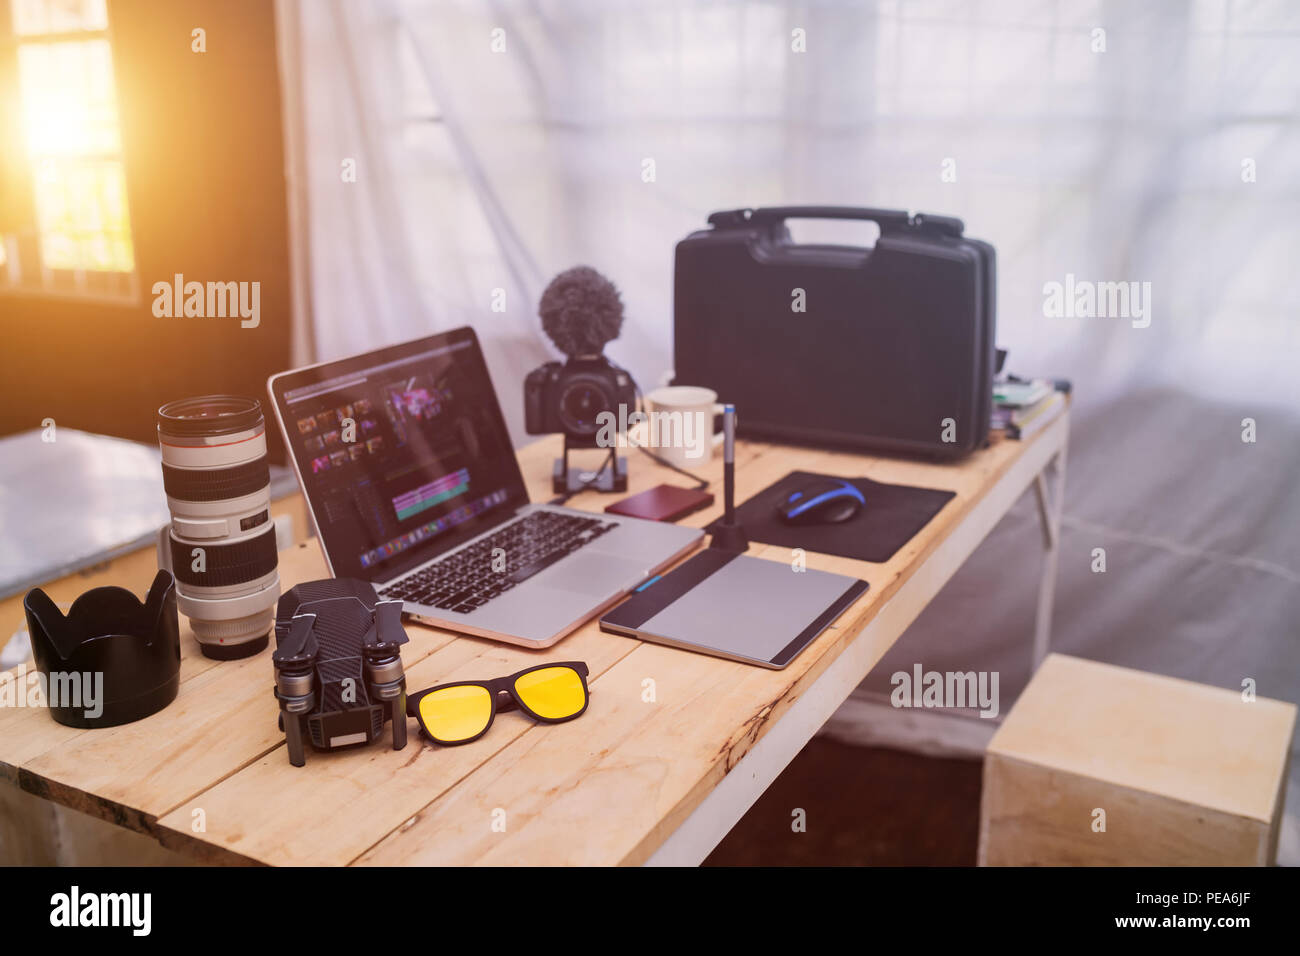 Desktop worker photographer the laptop Camera and drone gear